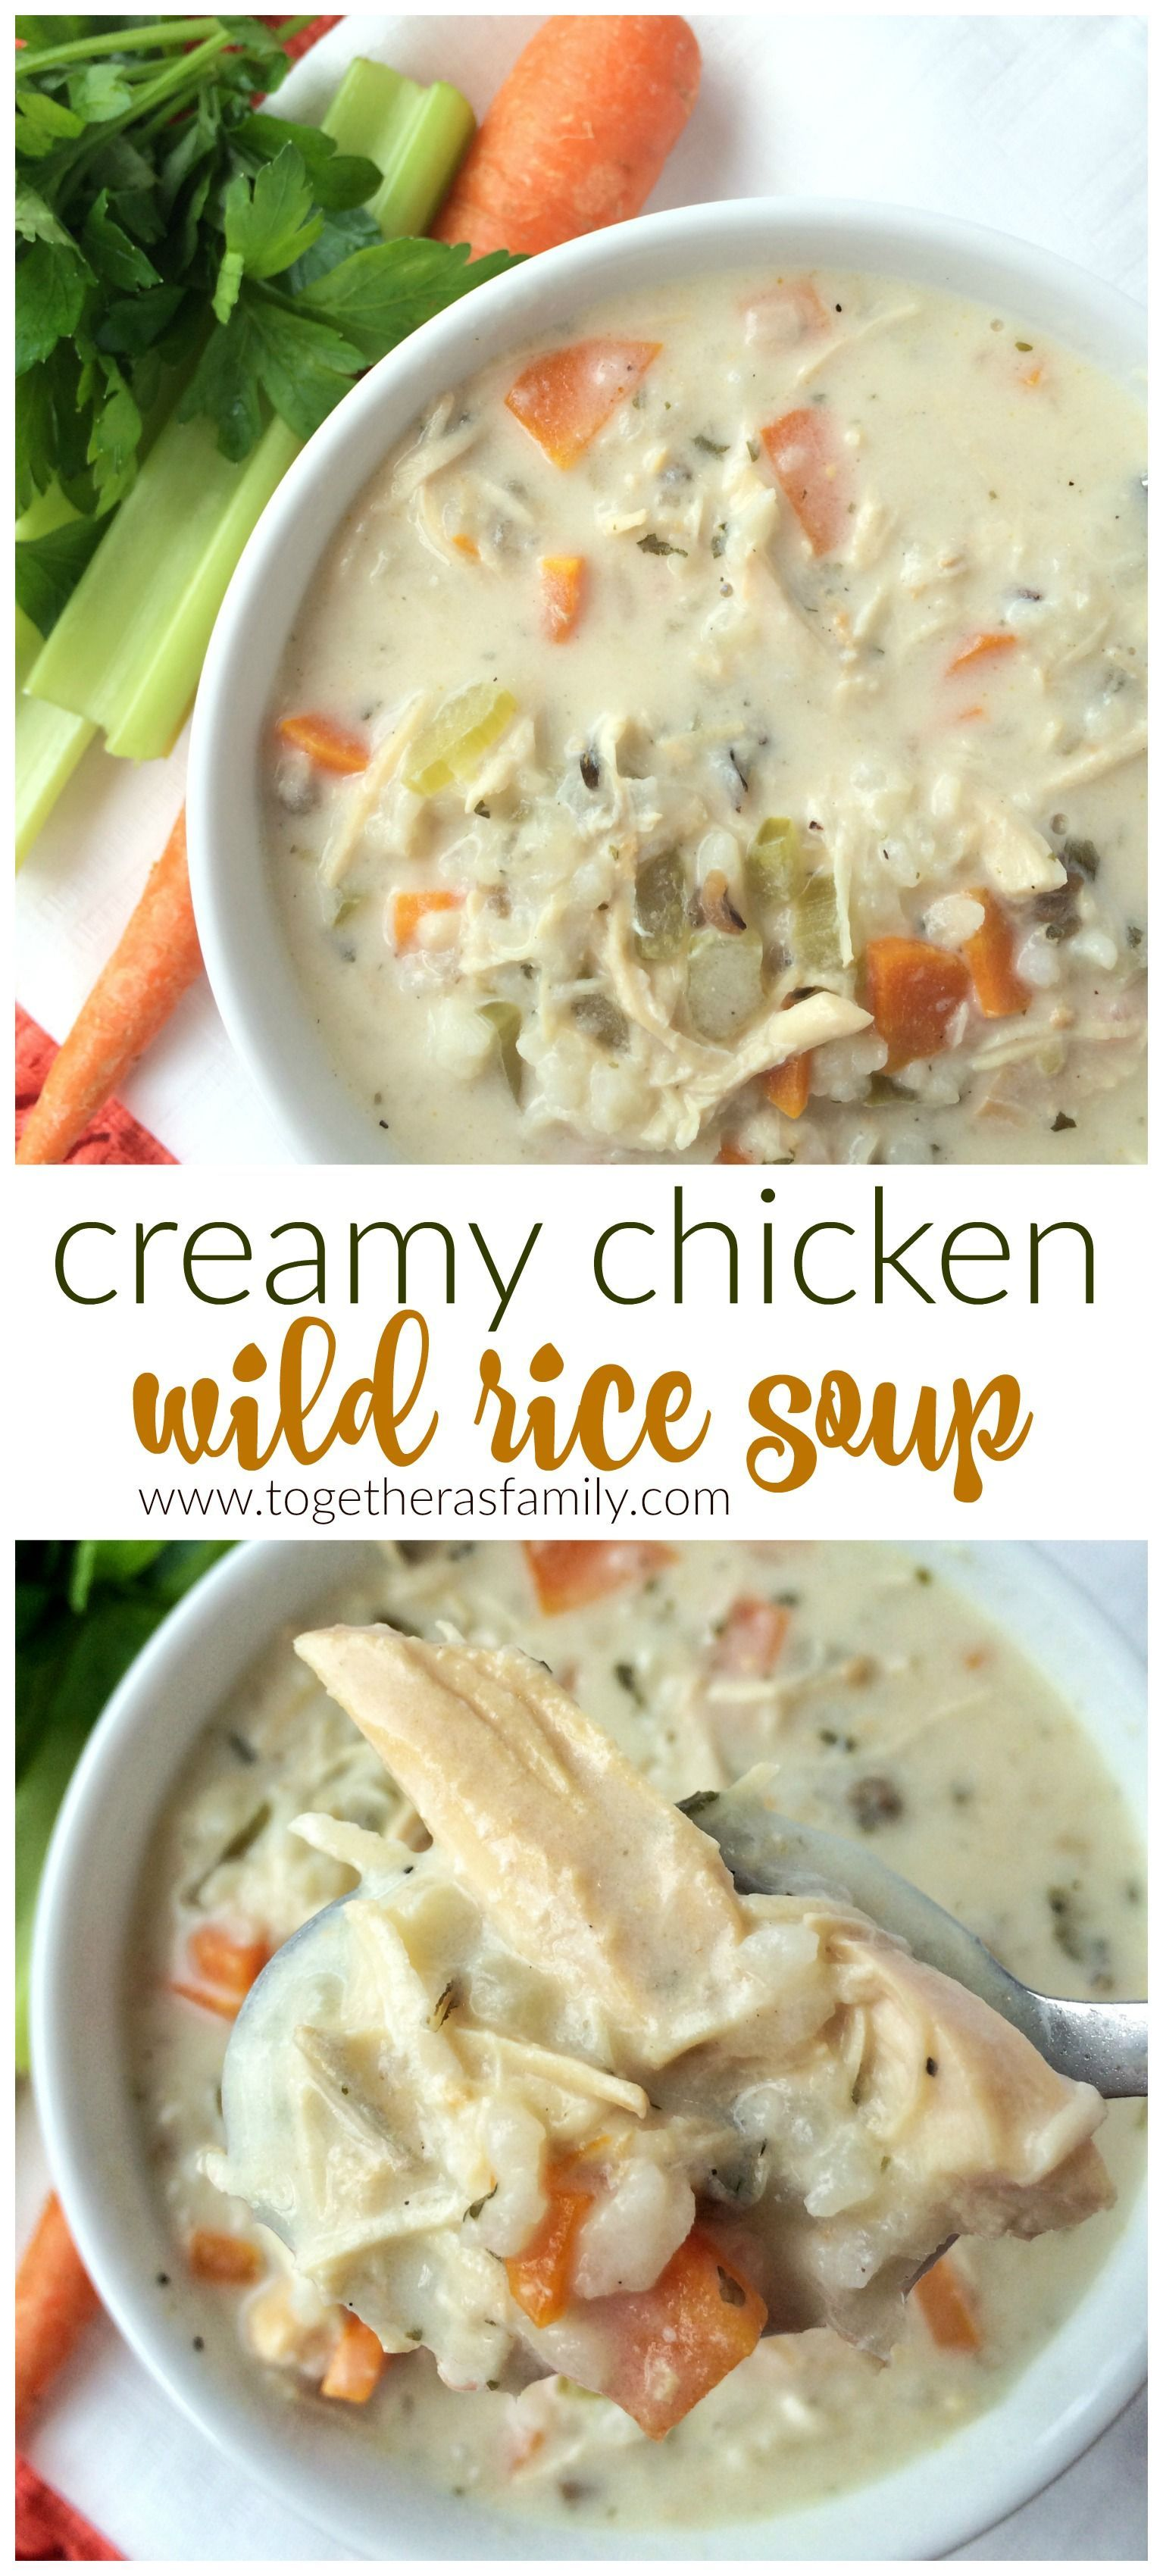 Creamy Chicken Wild Rice Soup Together as Family